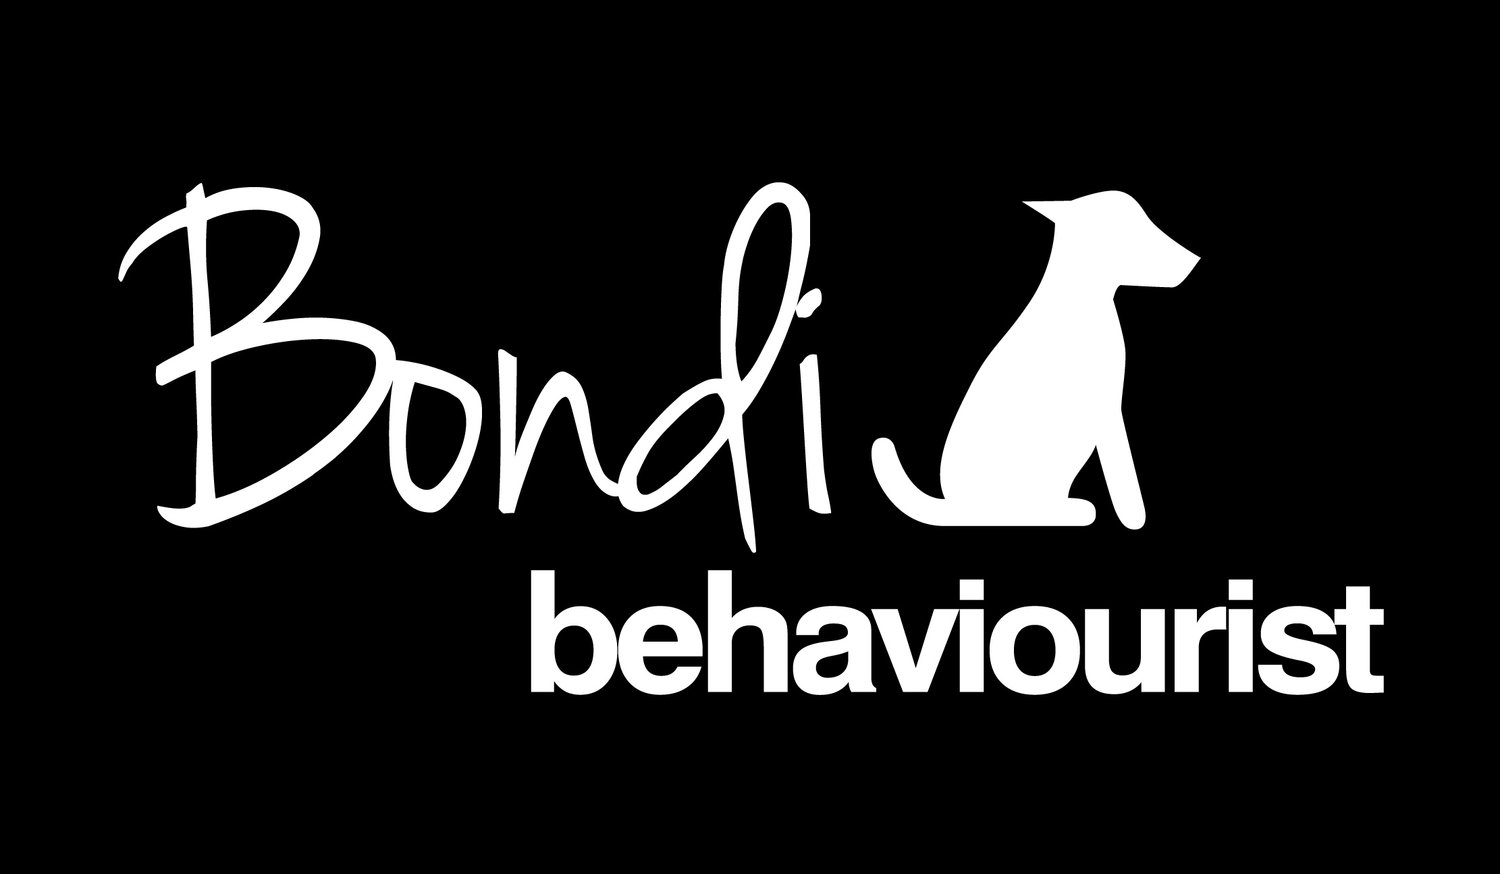 Bondi Behaviourist